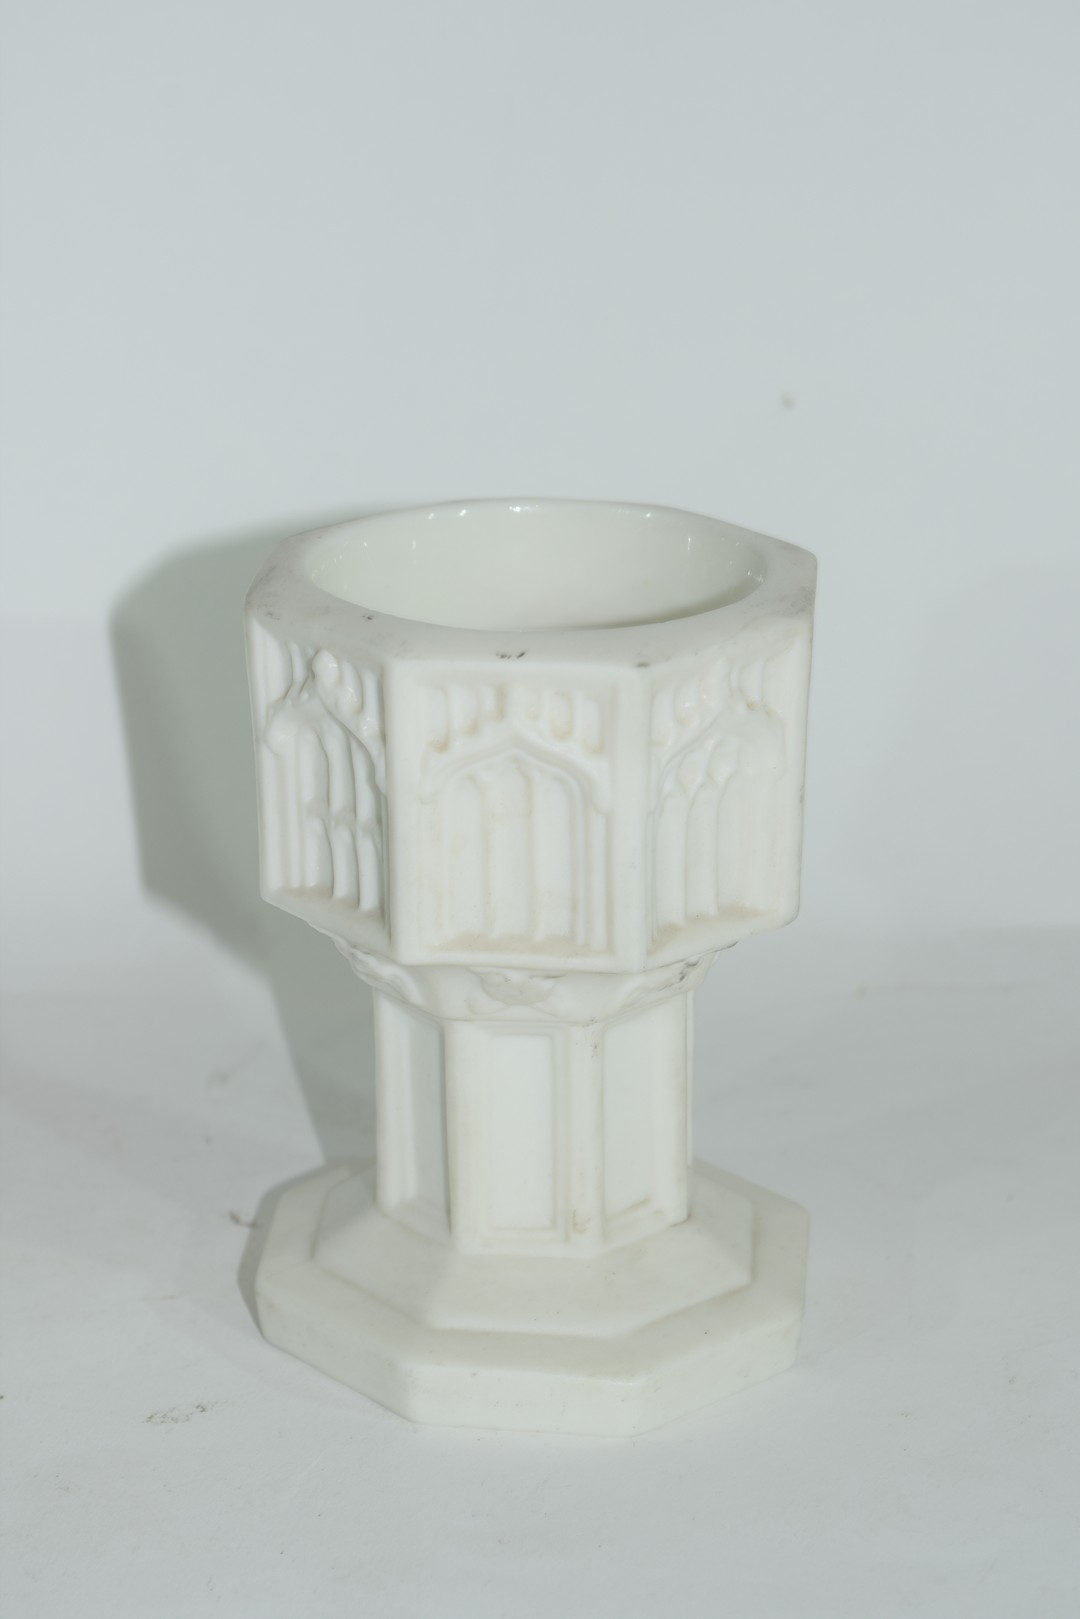 19th century Minton Parian ware model of a font - Image 2 of 7